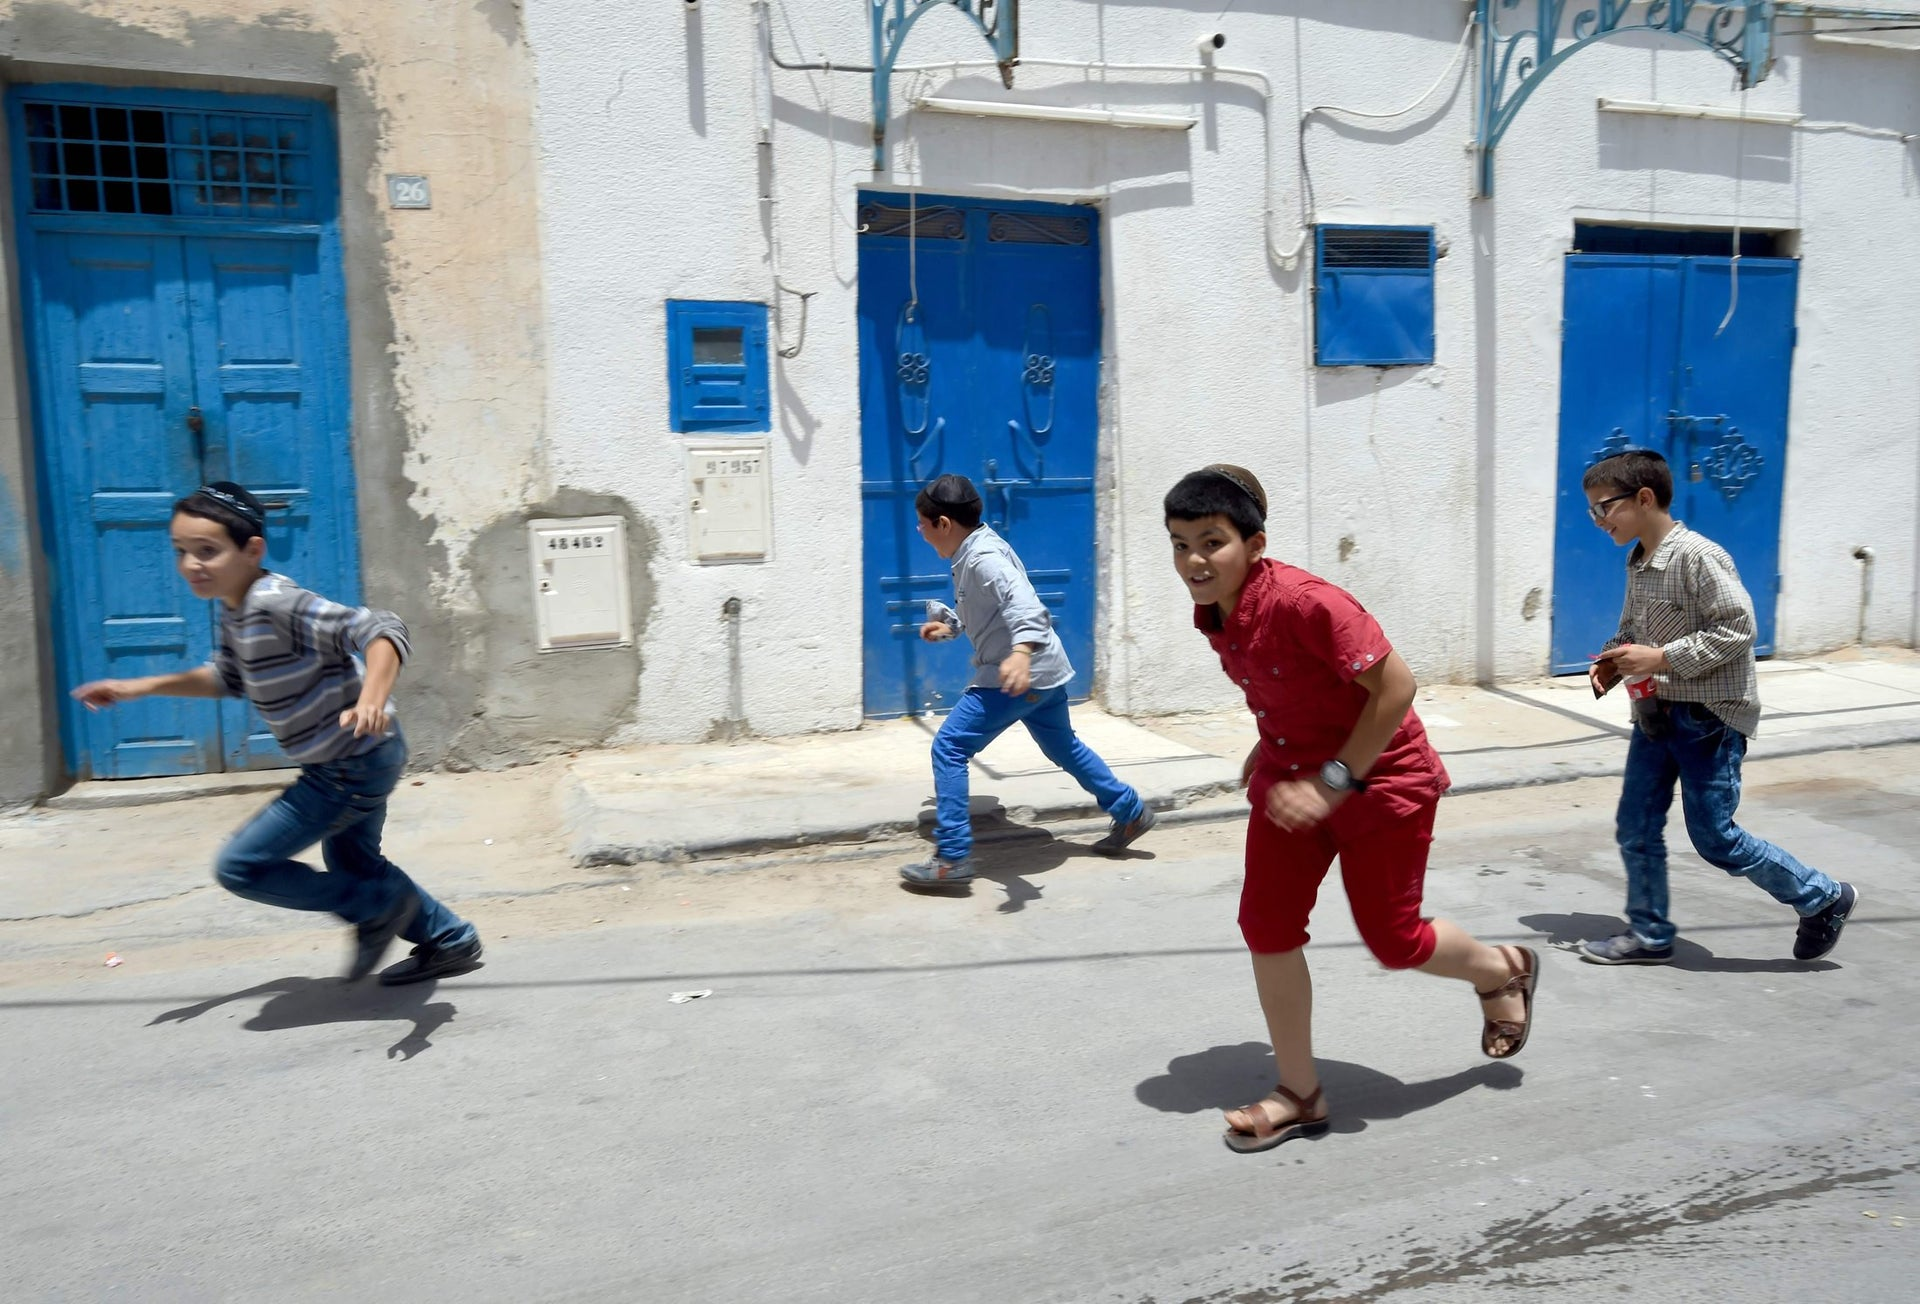 Tunisian Jewish youths play in the streets of Hara Kebira, the main jewish quarter of the Tunisian resort island of Djerba, after attending a ceremony at the Ghriba synagogue on the during the annual Jewish pilgrimage on May 26, 2016.